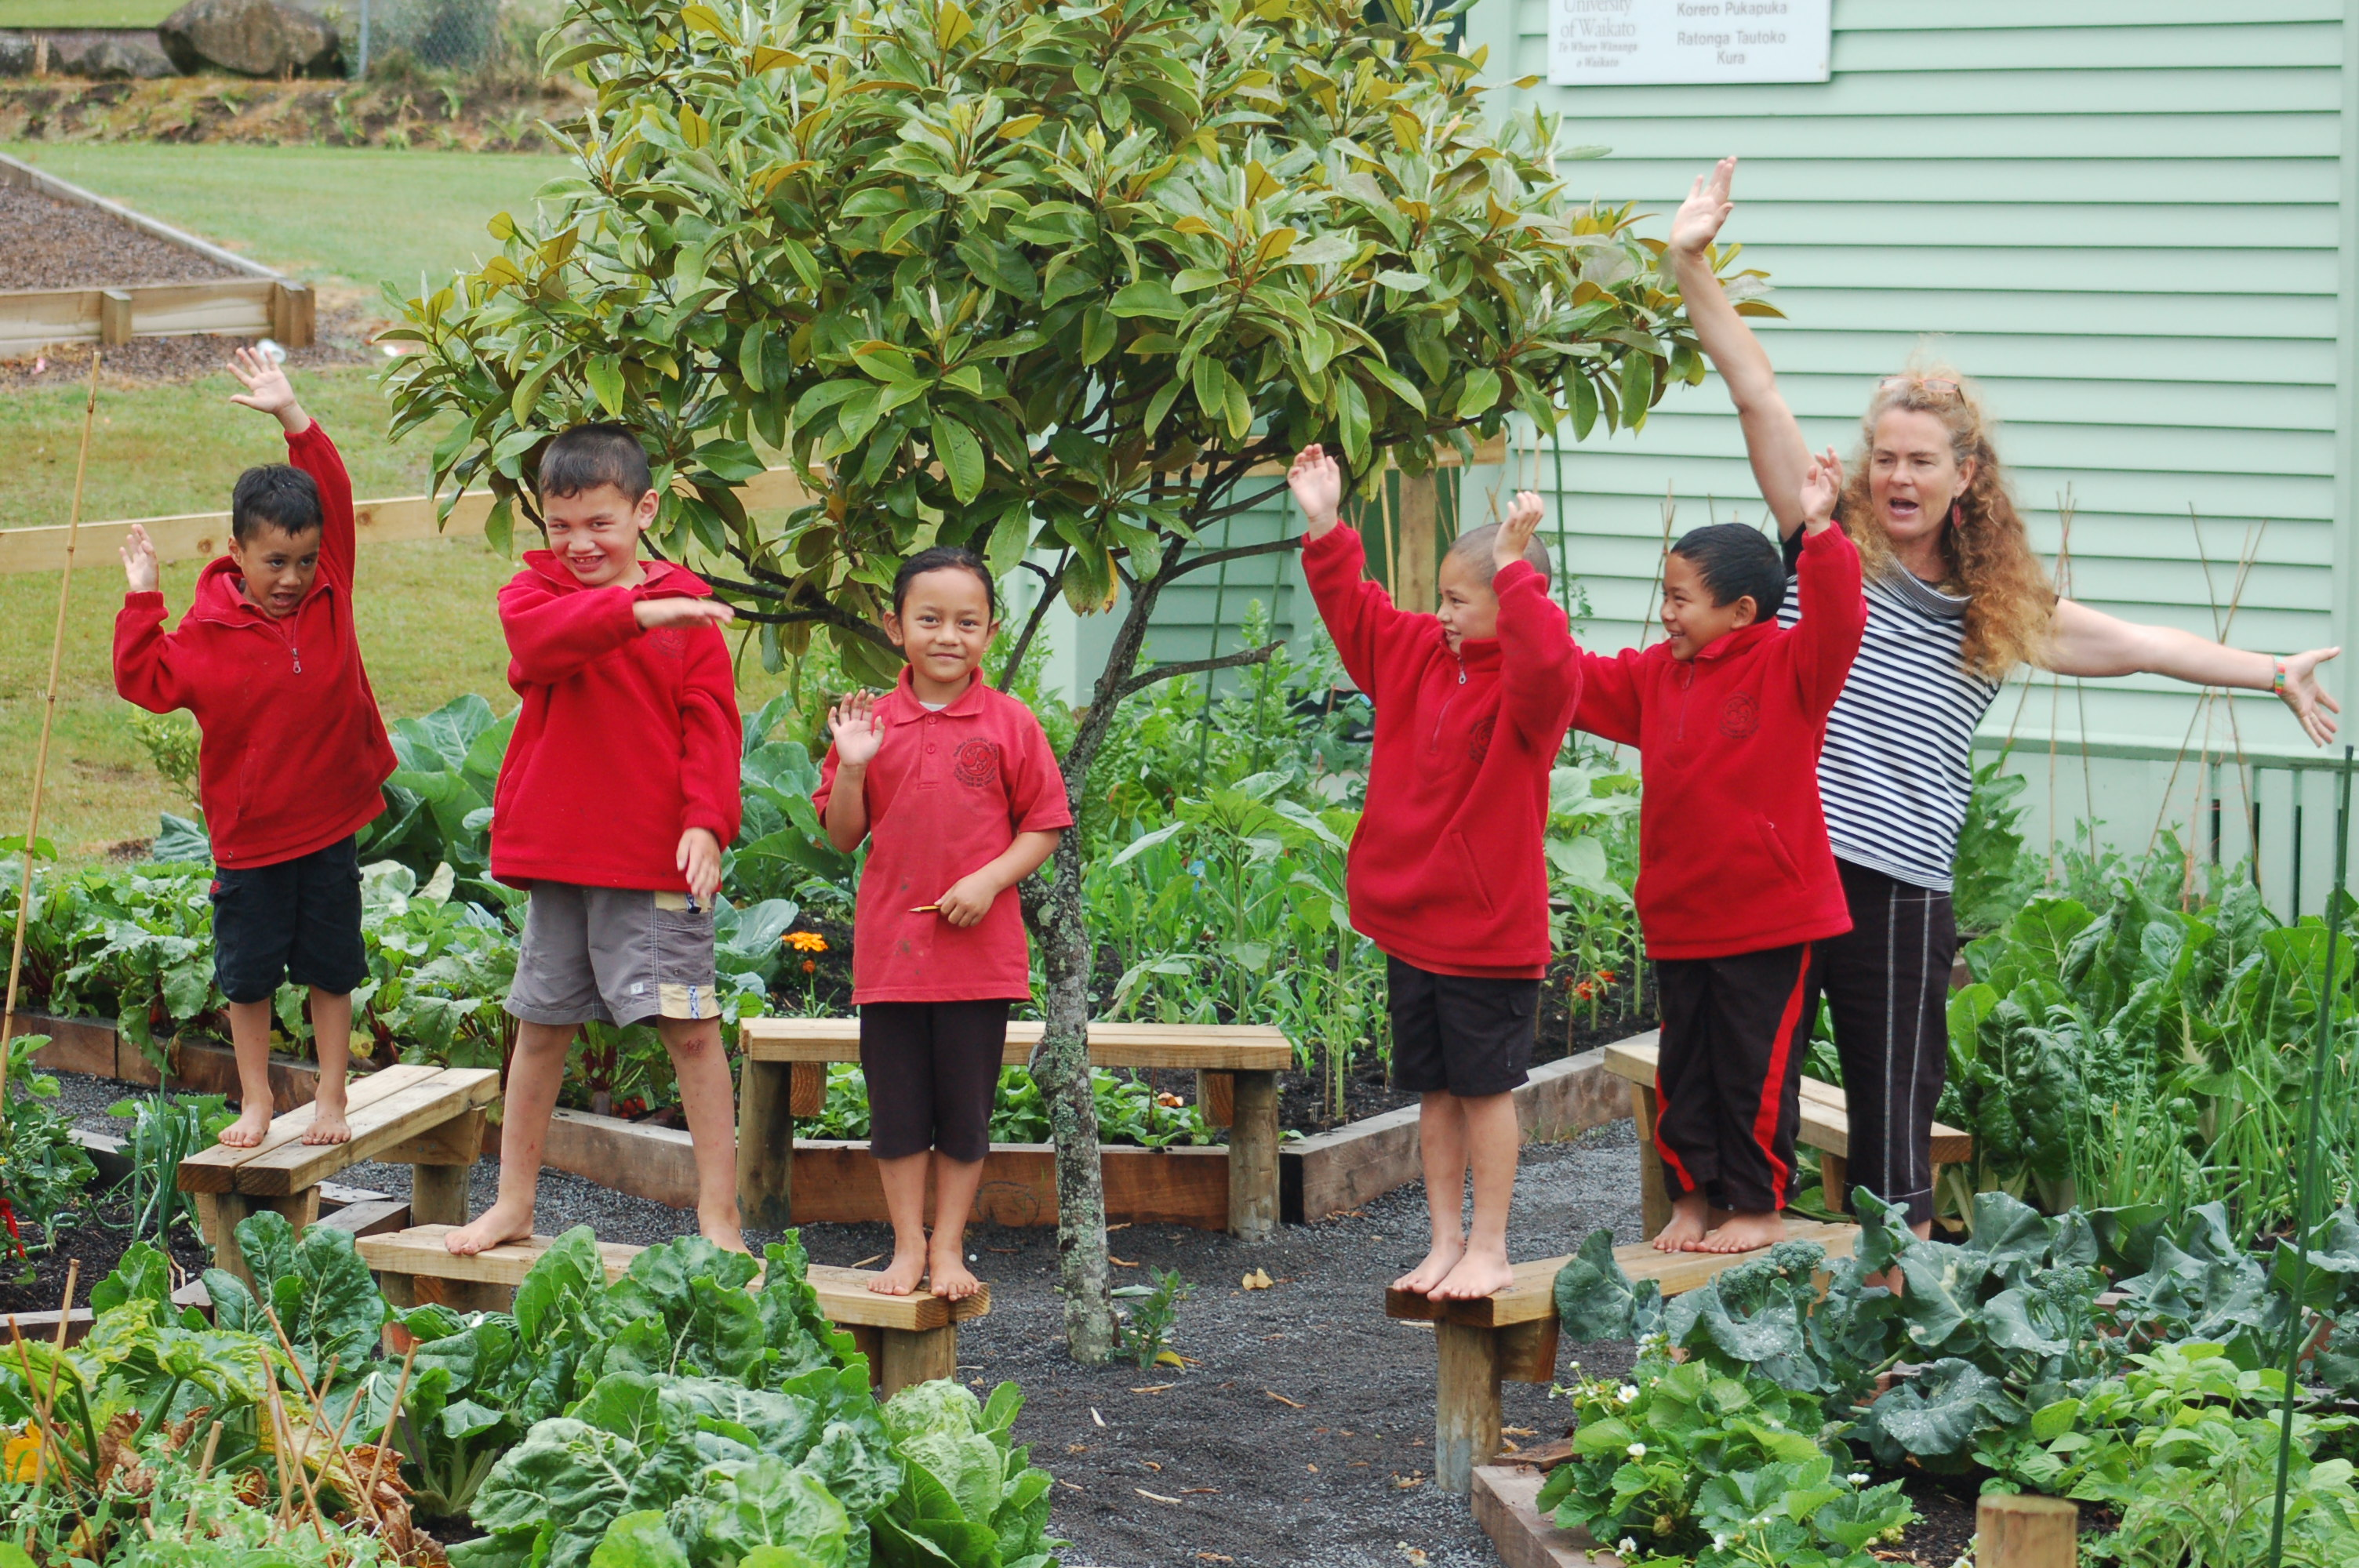 School gardeners at work in the garden